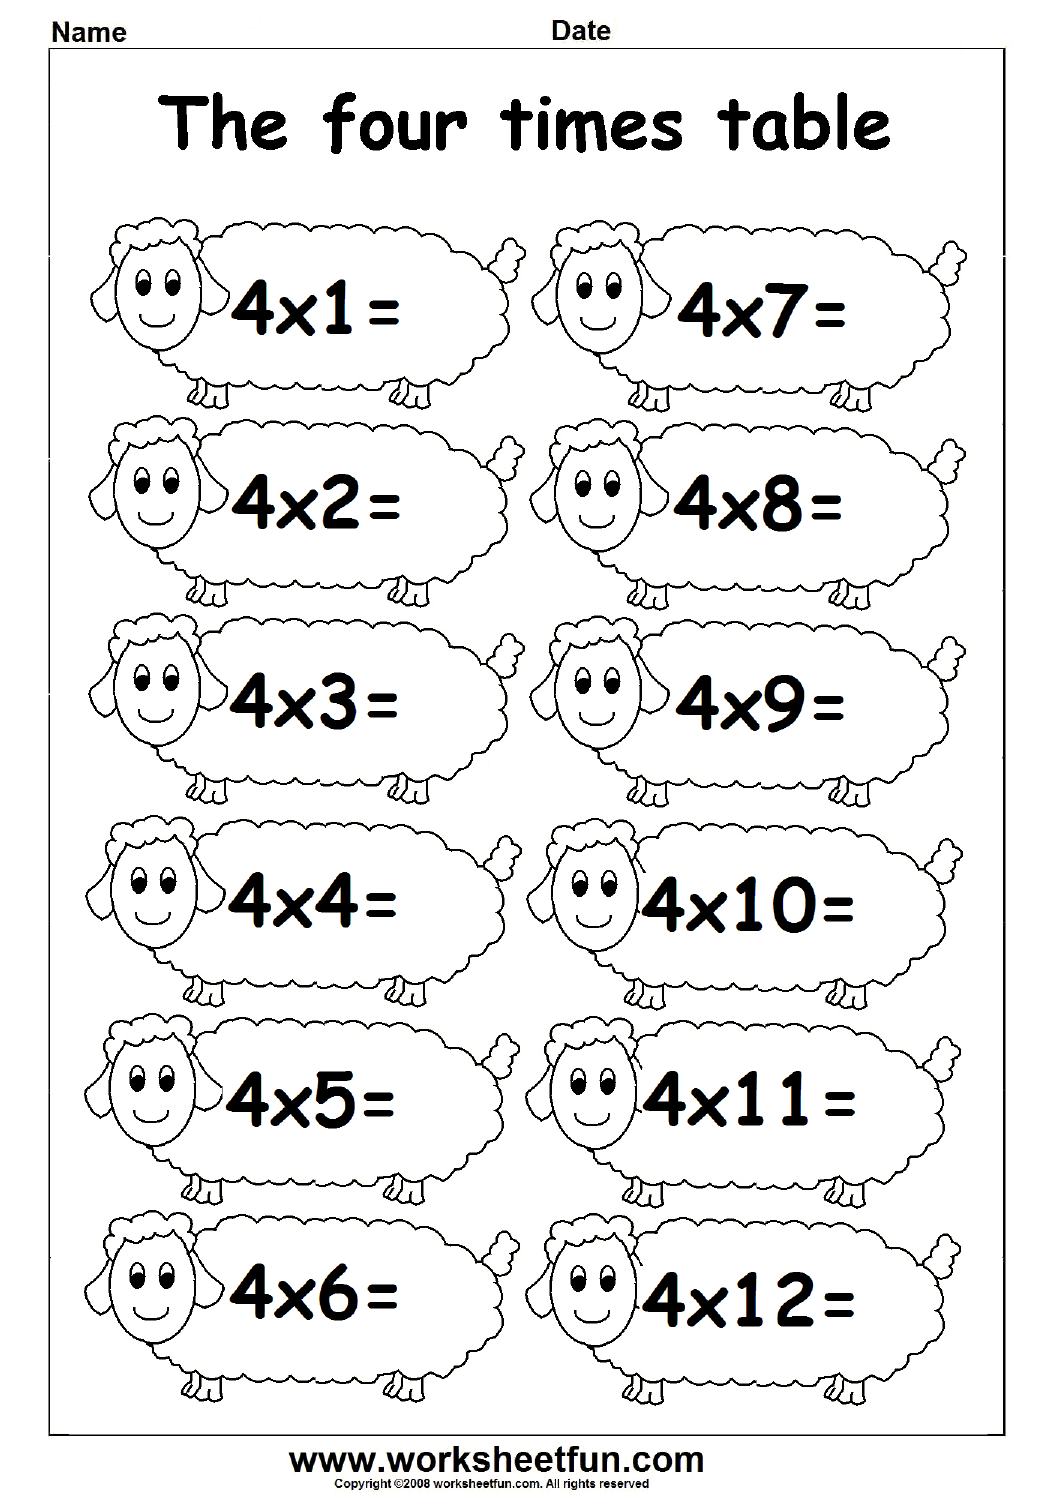 Image Result For Multiplication Table Worksheets Of Table 2 3 4 5 6